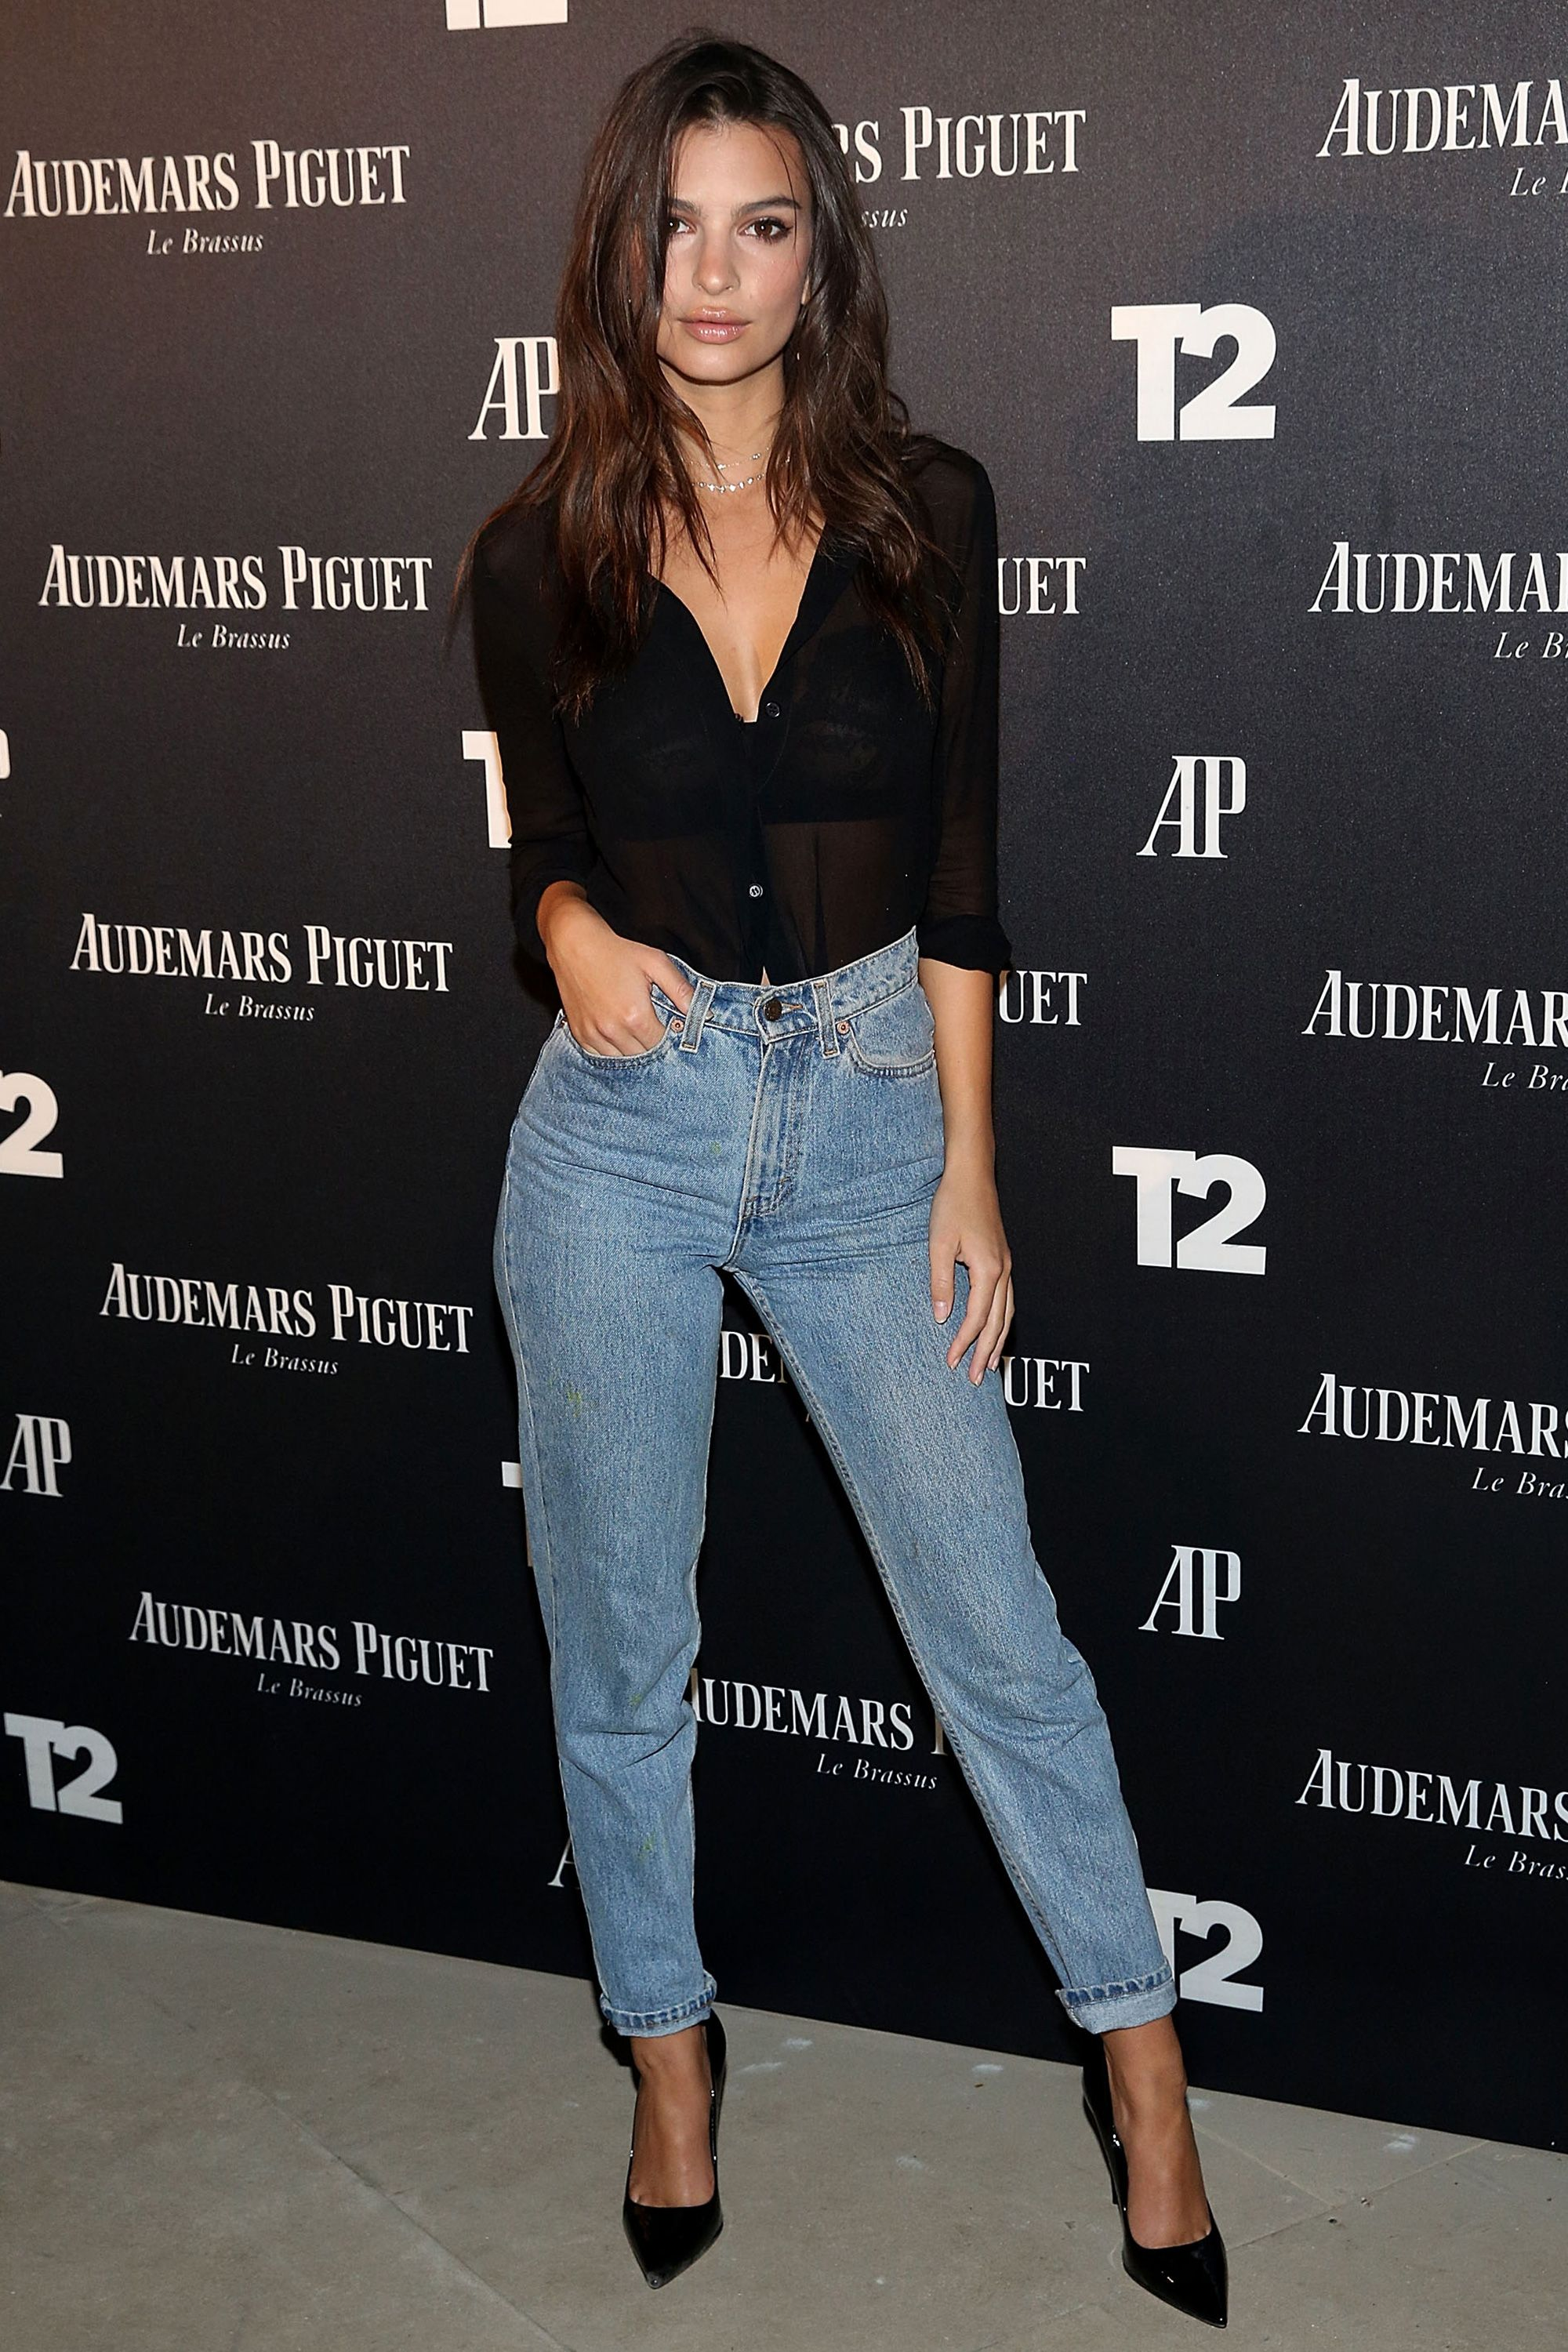 67a2cab2c95 Best dressed this week: 28 November Black Shirt With Jeans, Black Mom Jeans  Outfit